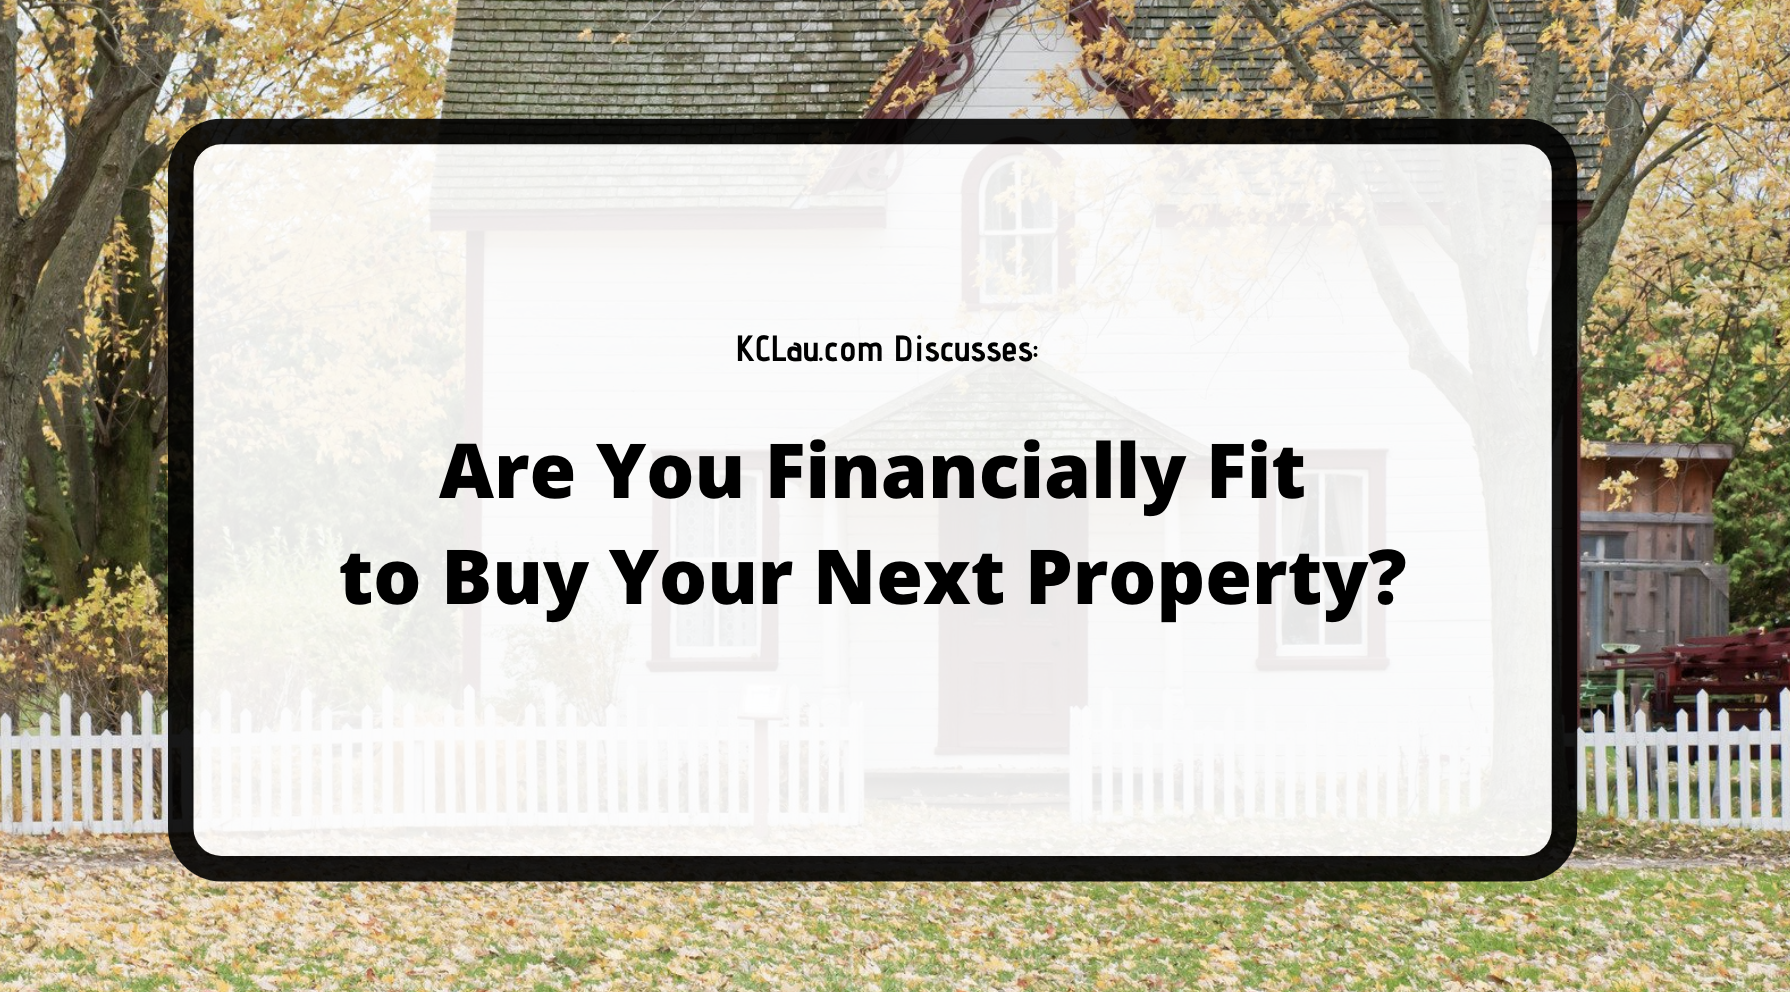 Are You Financially Fit to Buy Your Next Property?